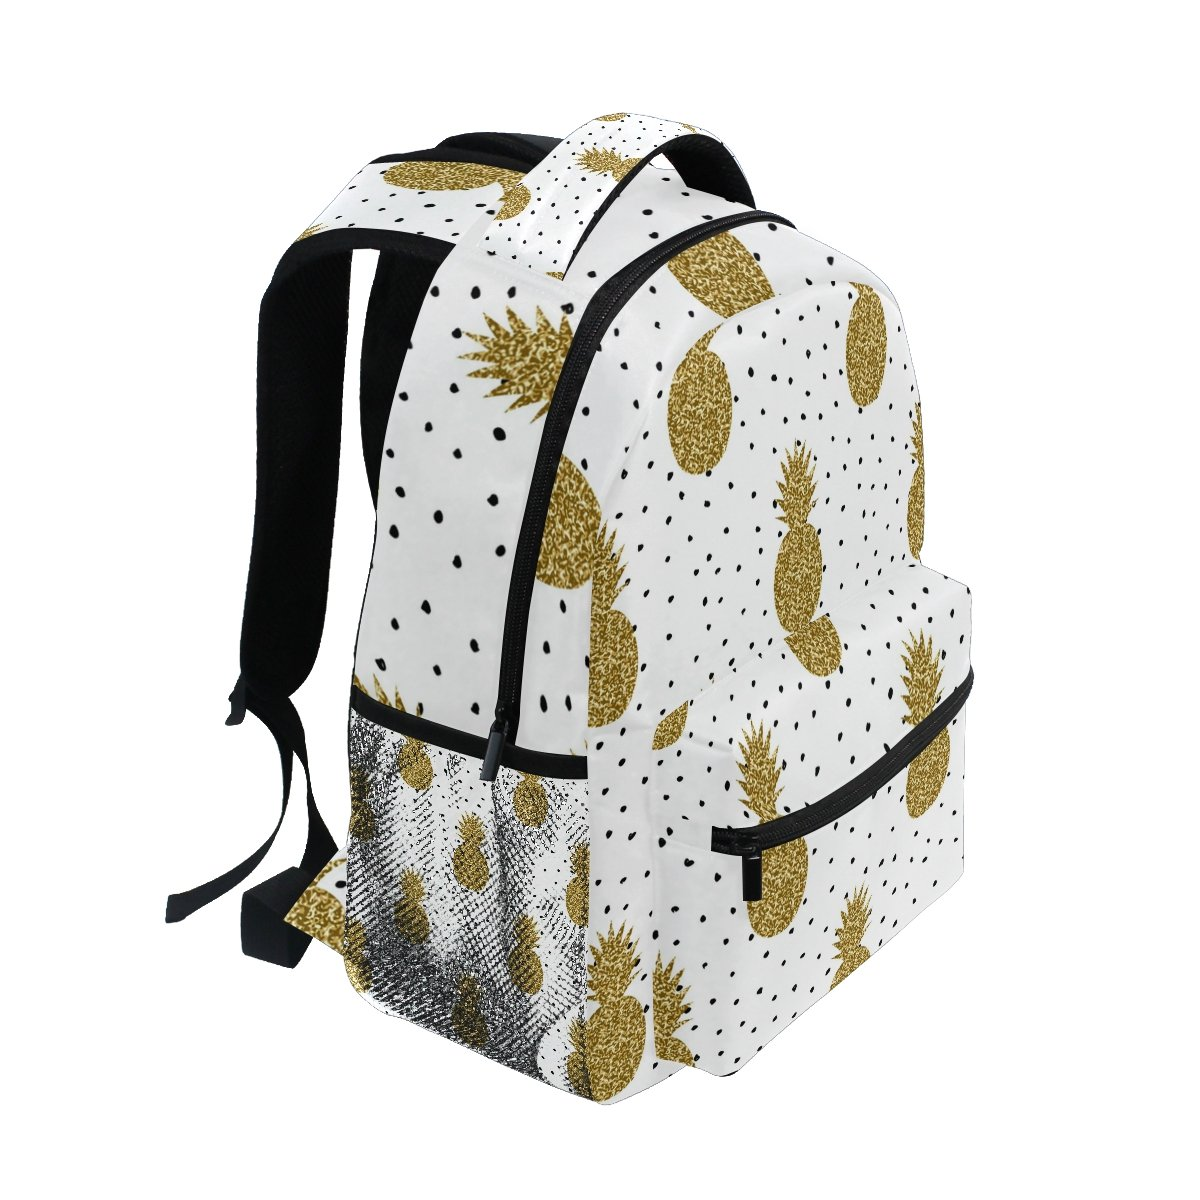 Amazon.com: ZZKKO Tropical Pineapple Polka Dot Backpacks College School Book Bag Travel Hiking Camping Daypack: Computers & Accessories